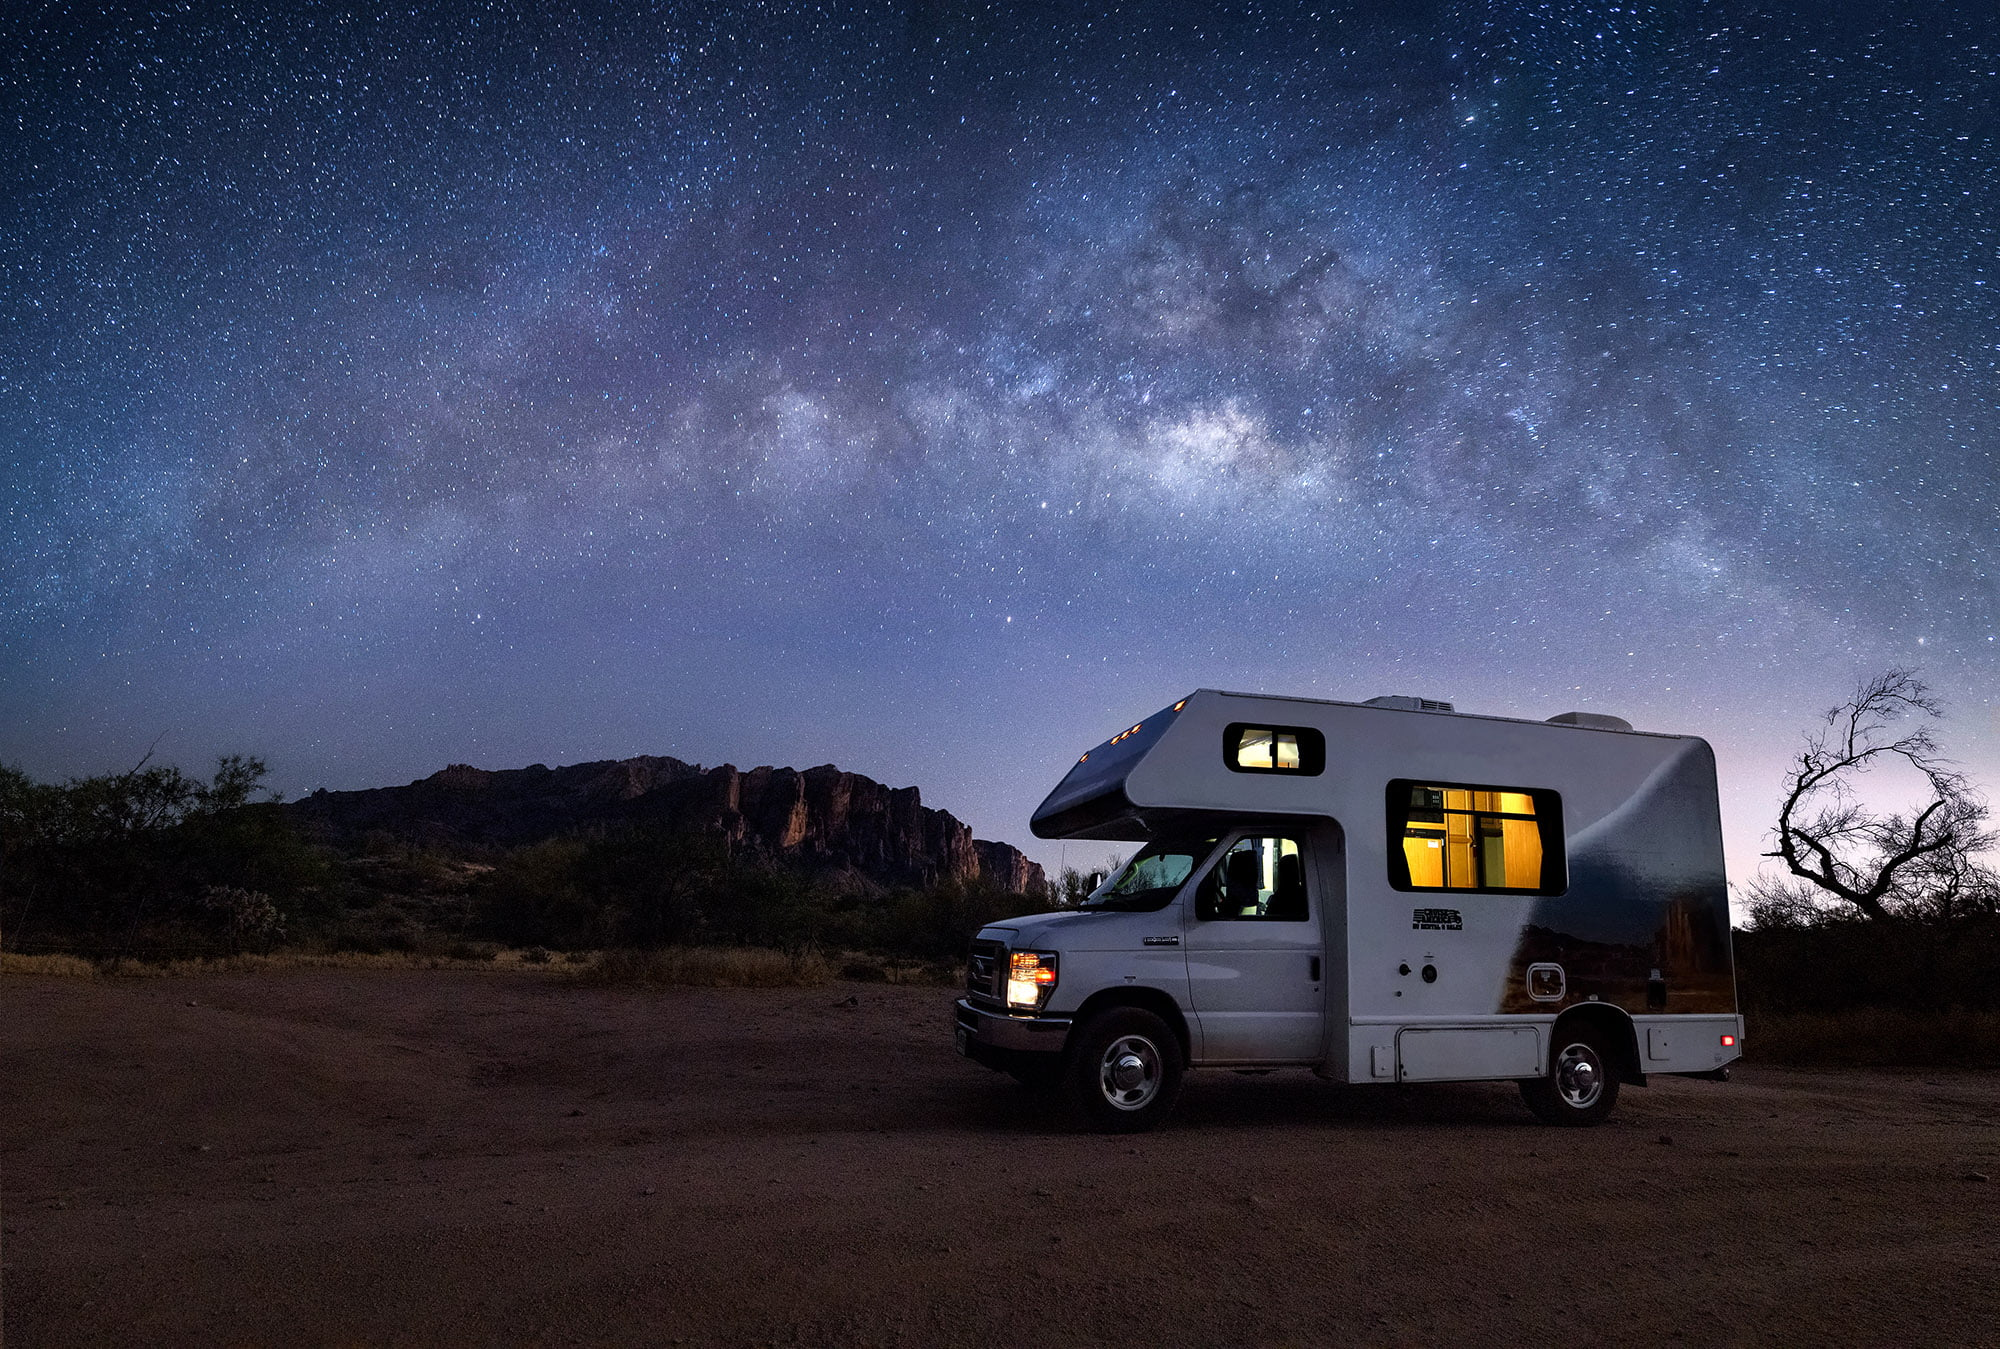 Camper with beautiful night sky